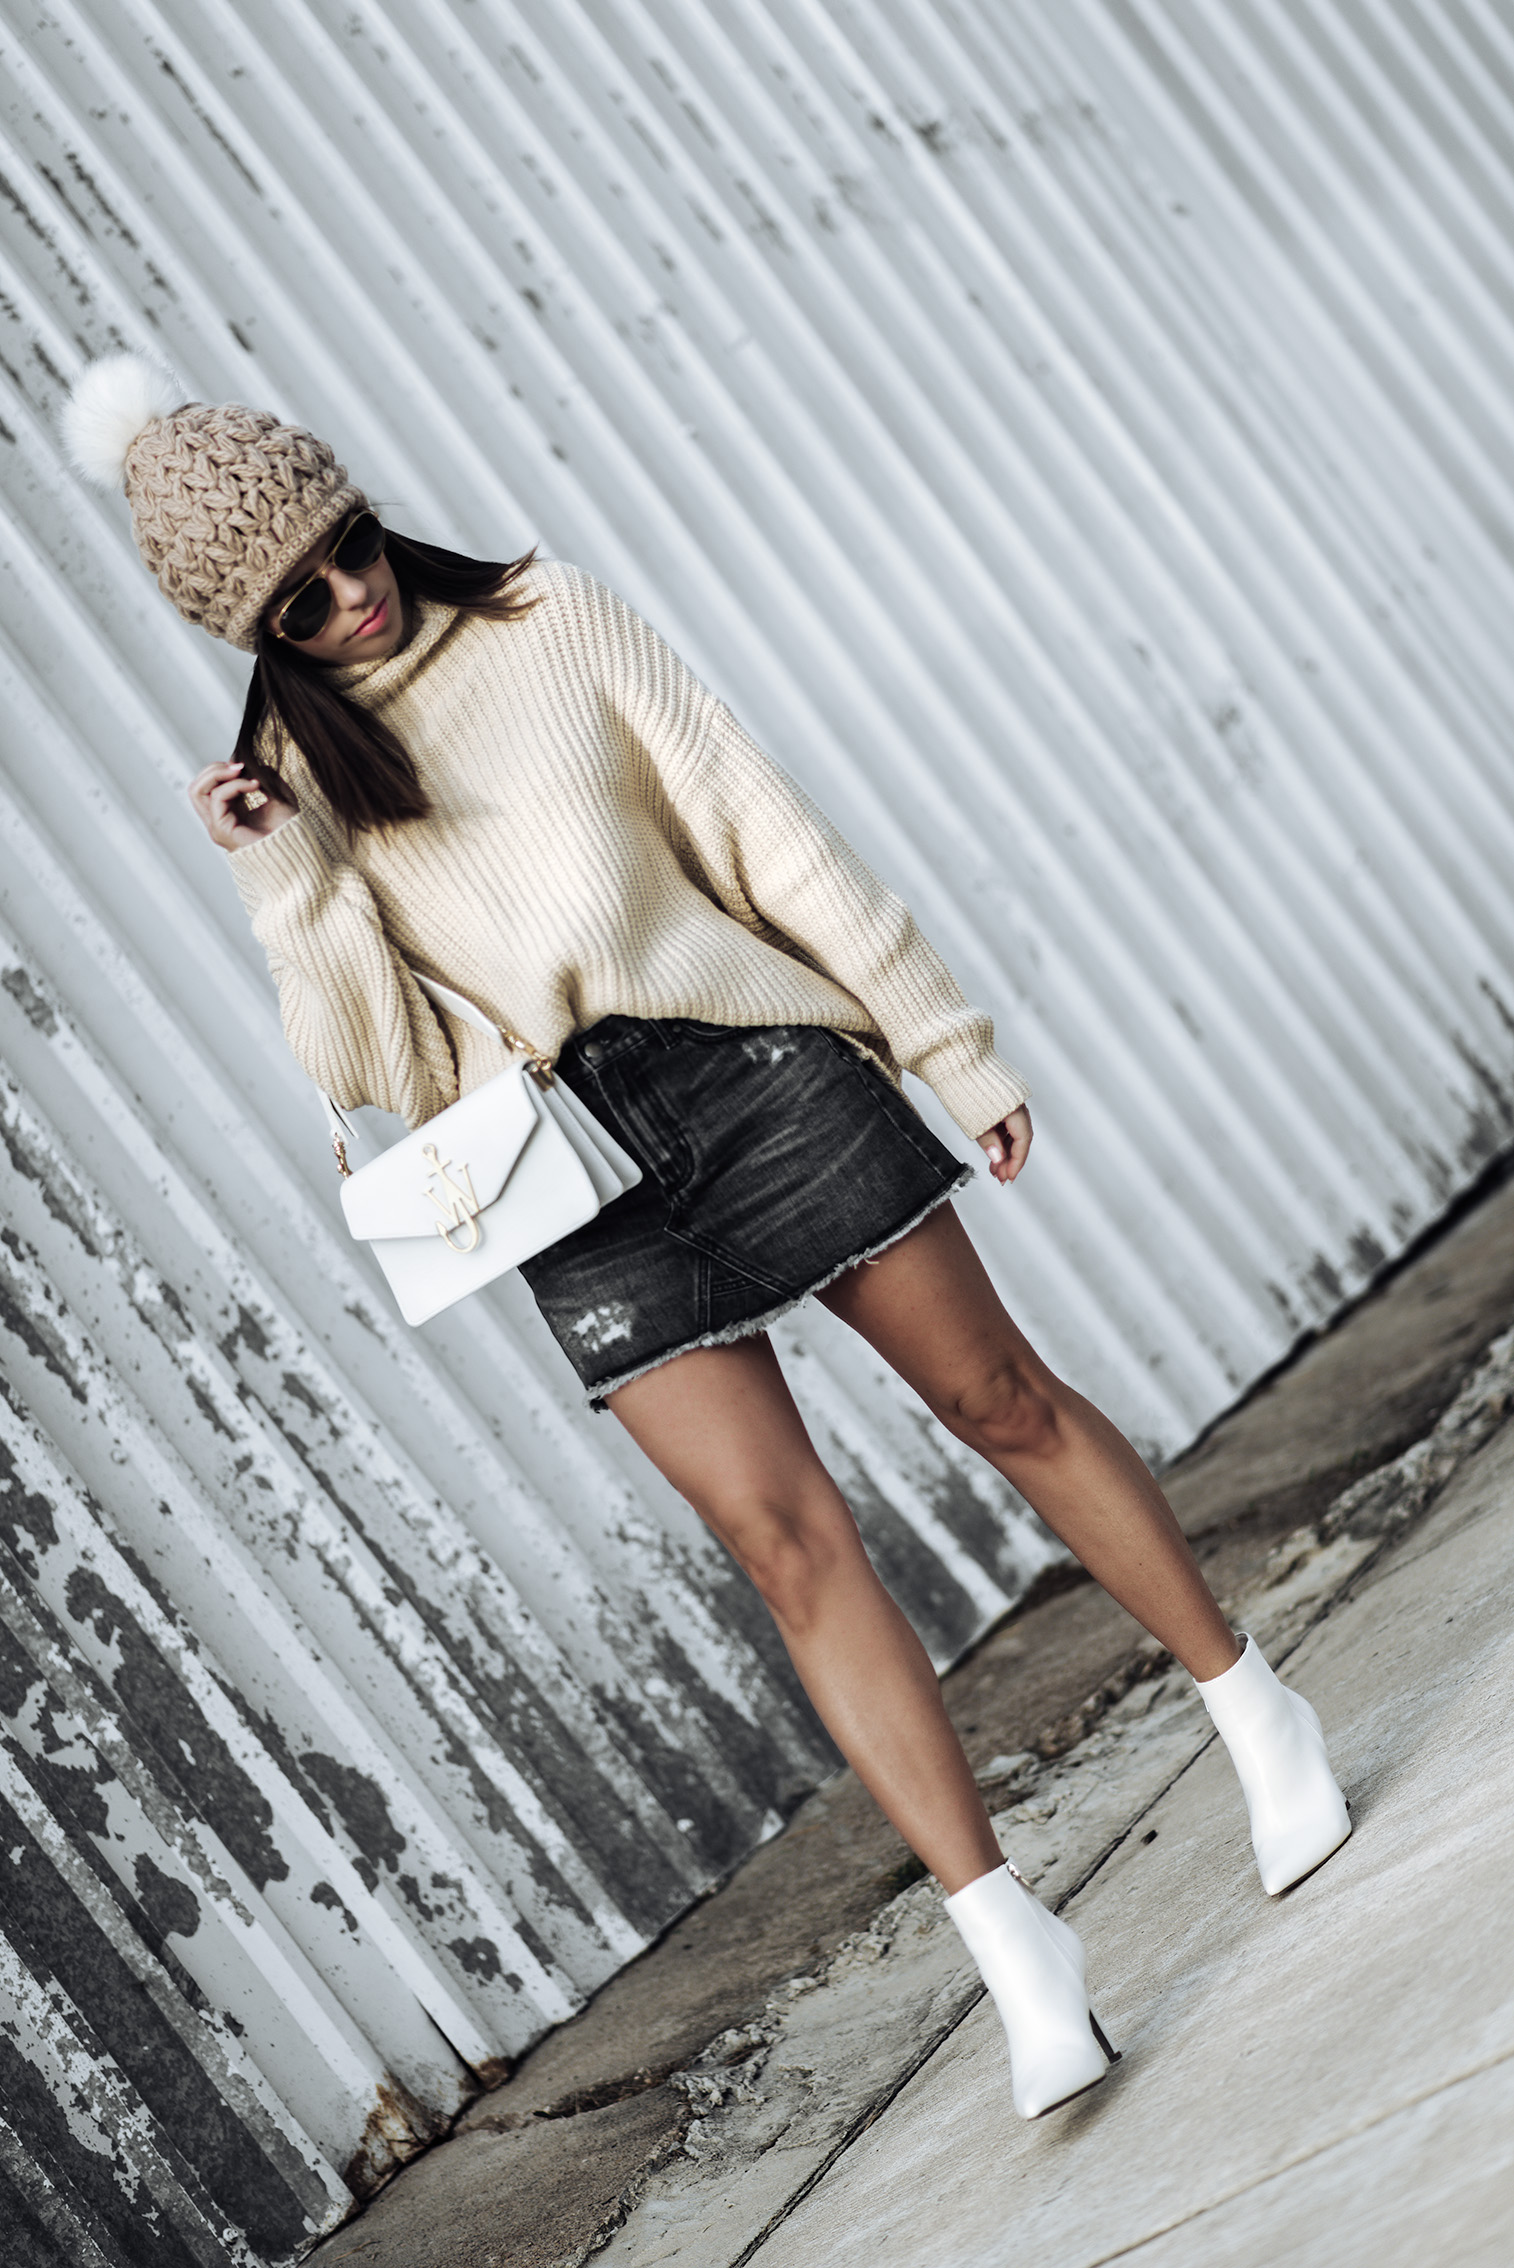 All white accessories |Free People swim too deep sweater | Evidnt denim skirt | White ankle boots (similar) | Pom pom beanie (this years version) | J.W. Anderson logo bag in white |Tiffany Jais fashion and lifestyle blogger of Flaunt and Center | Houston fashion blogger | Straw handbag Trend | Streetstyle blog #streetstyle #sweateroutfits #denimskirtoutfits #falloutfits2017 #falloutfits